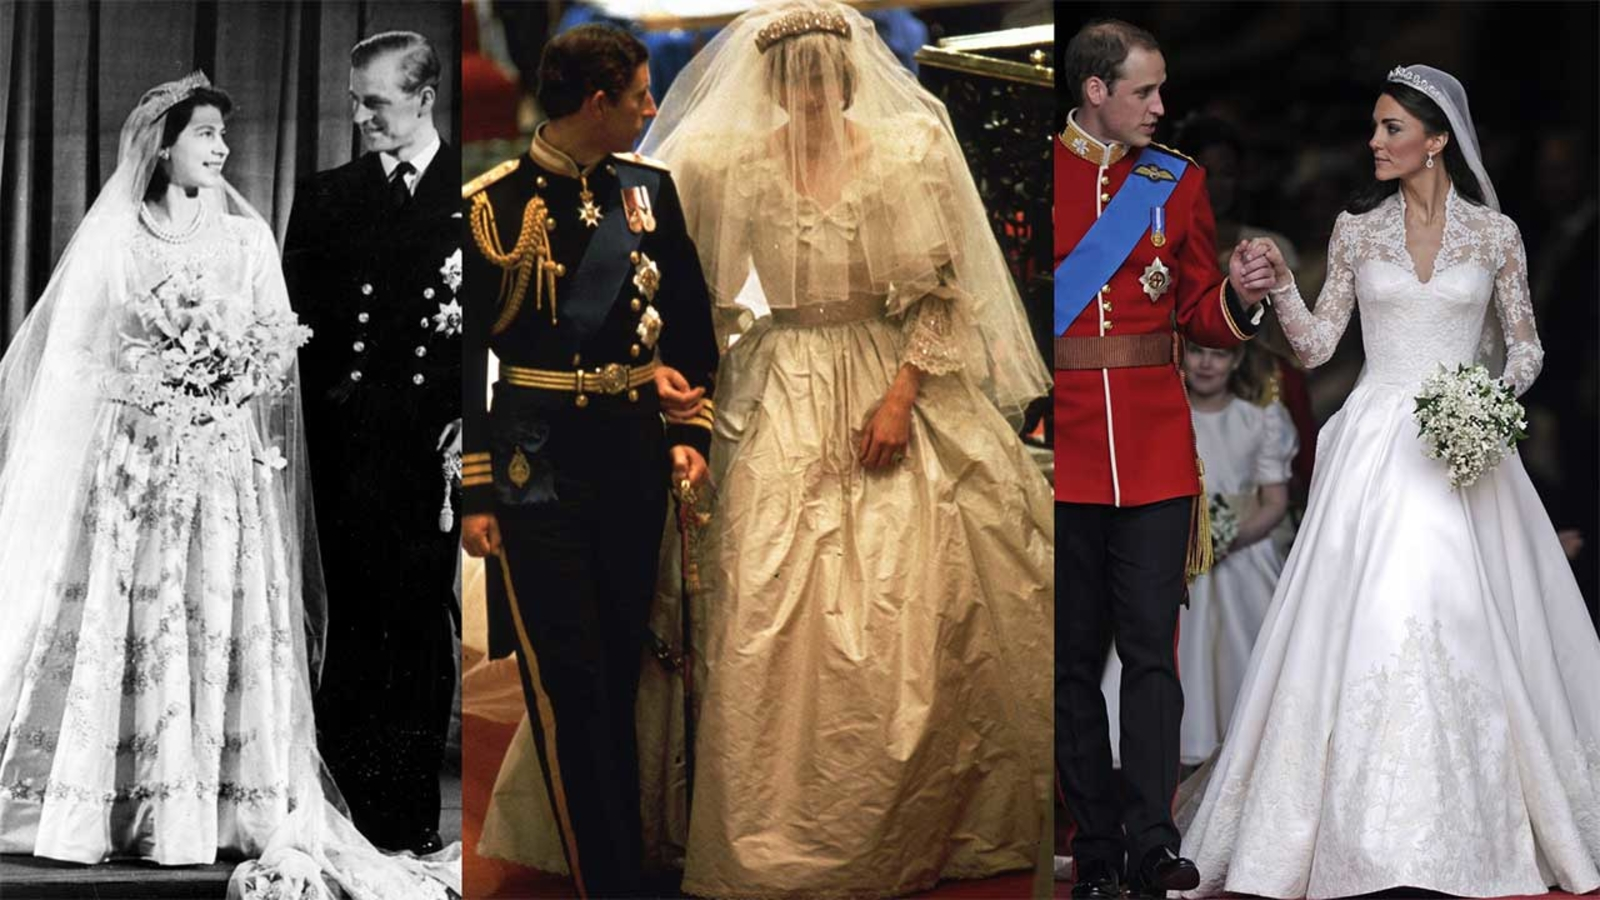 queen elizabeth ii princess diana kate middleton and beyond royal wedding dresses through the years abc7 chicago queen elizabeth ii princess diana